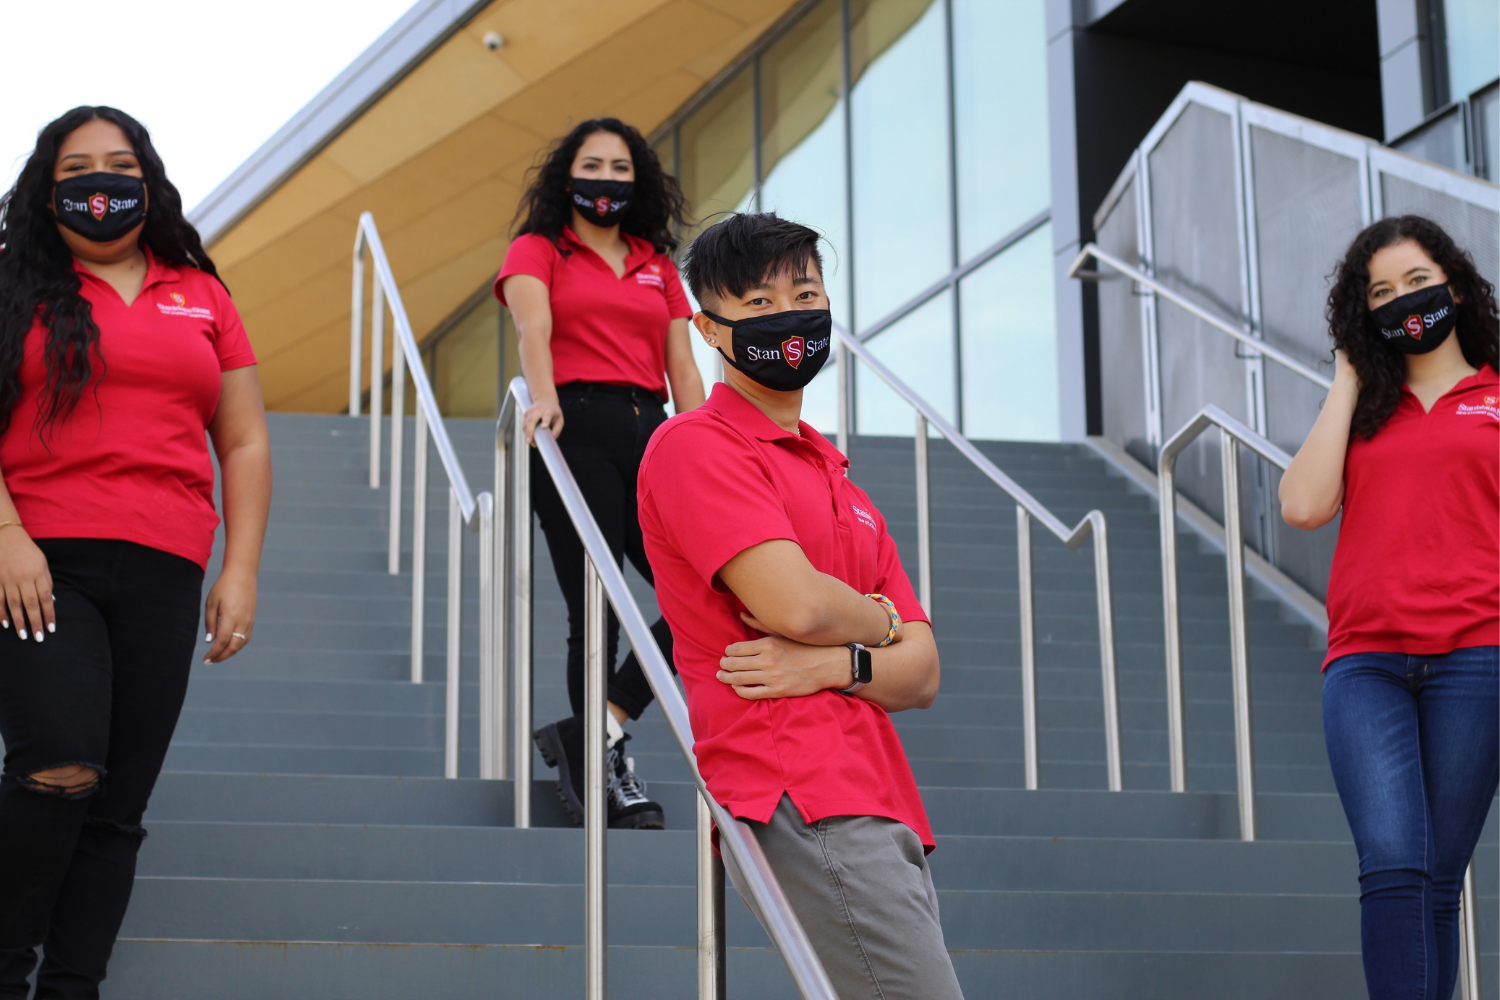 University students wearing face coverings.